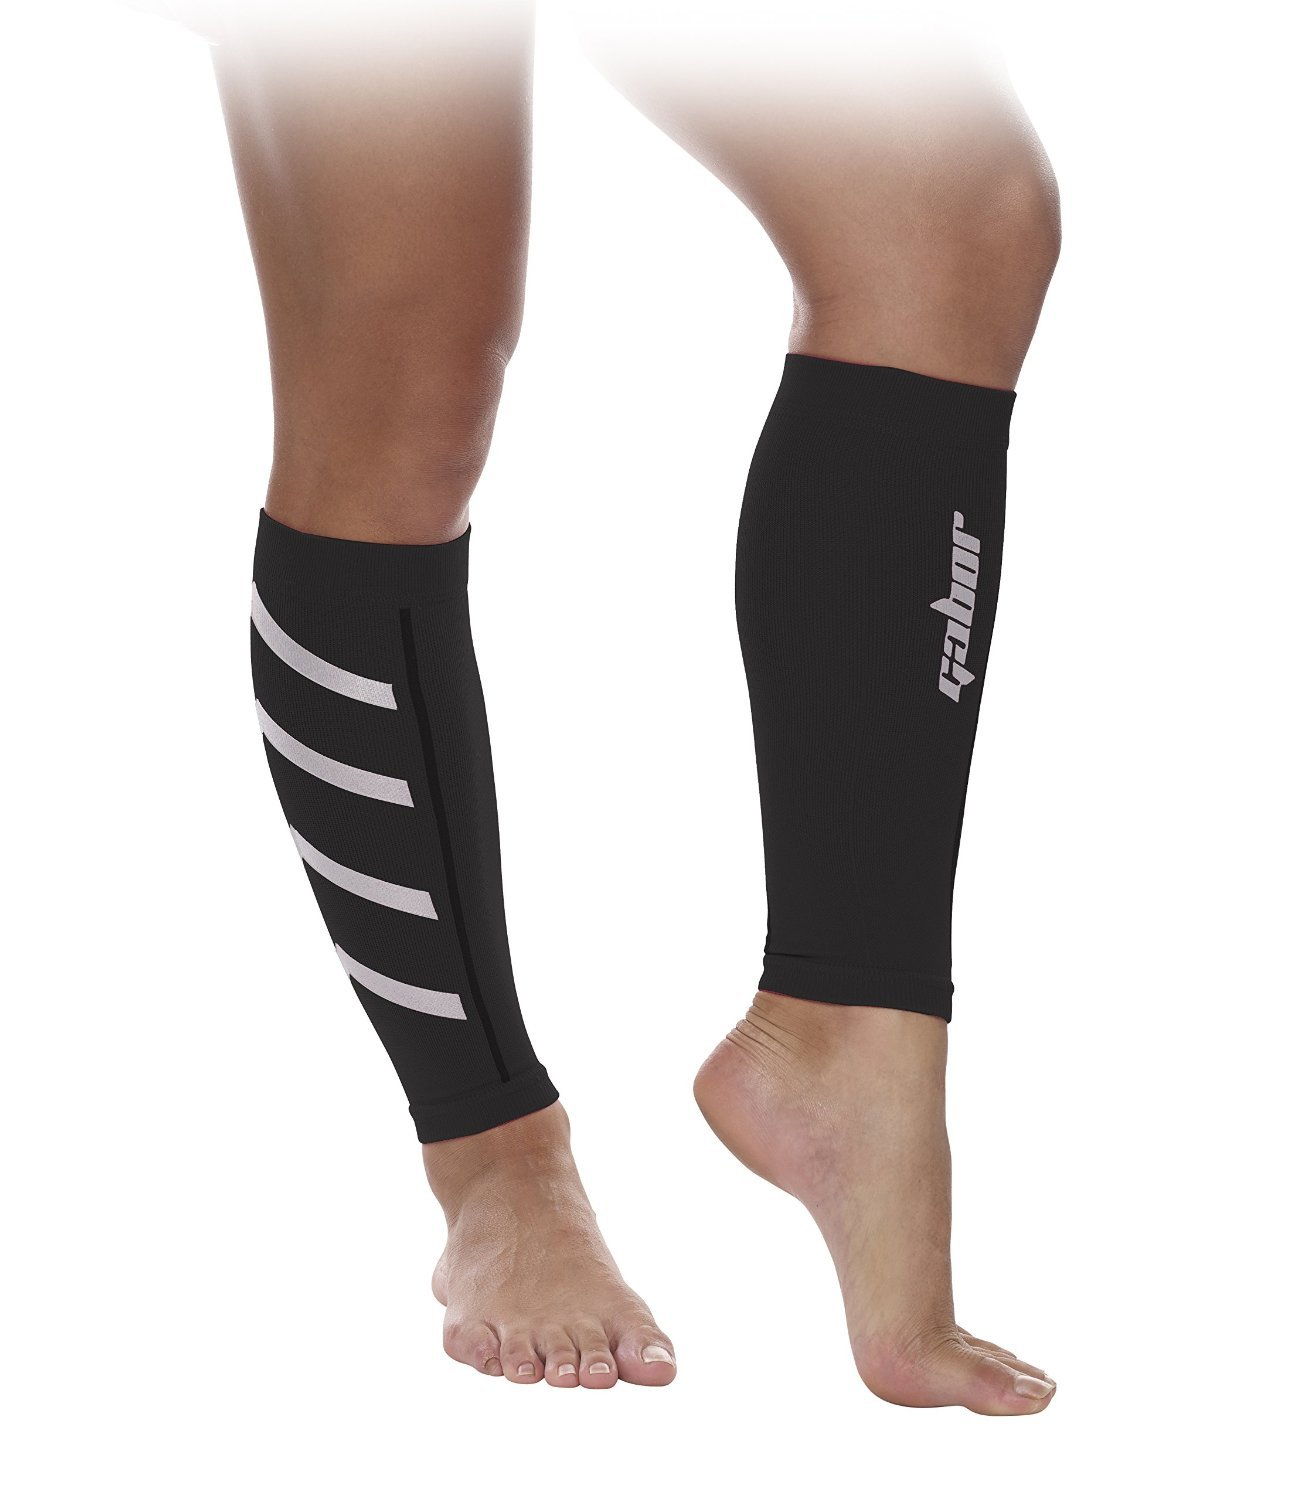 Gabor Fitness Graduated 20-25mm Hg Compression Running Leg Sleeves